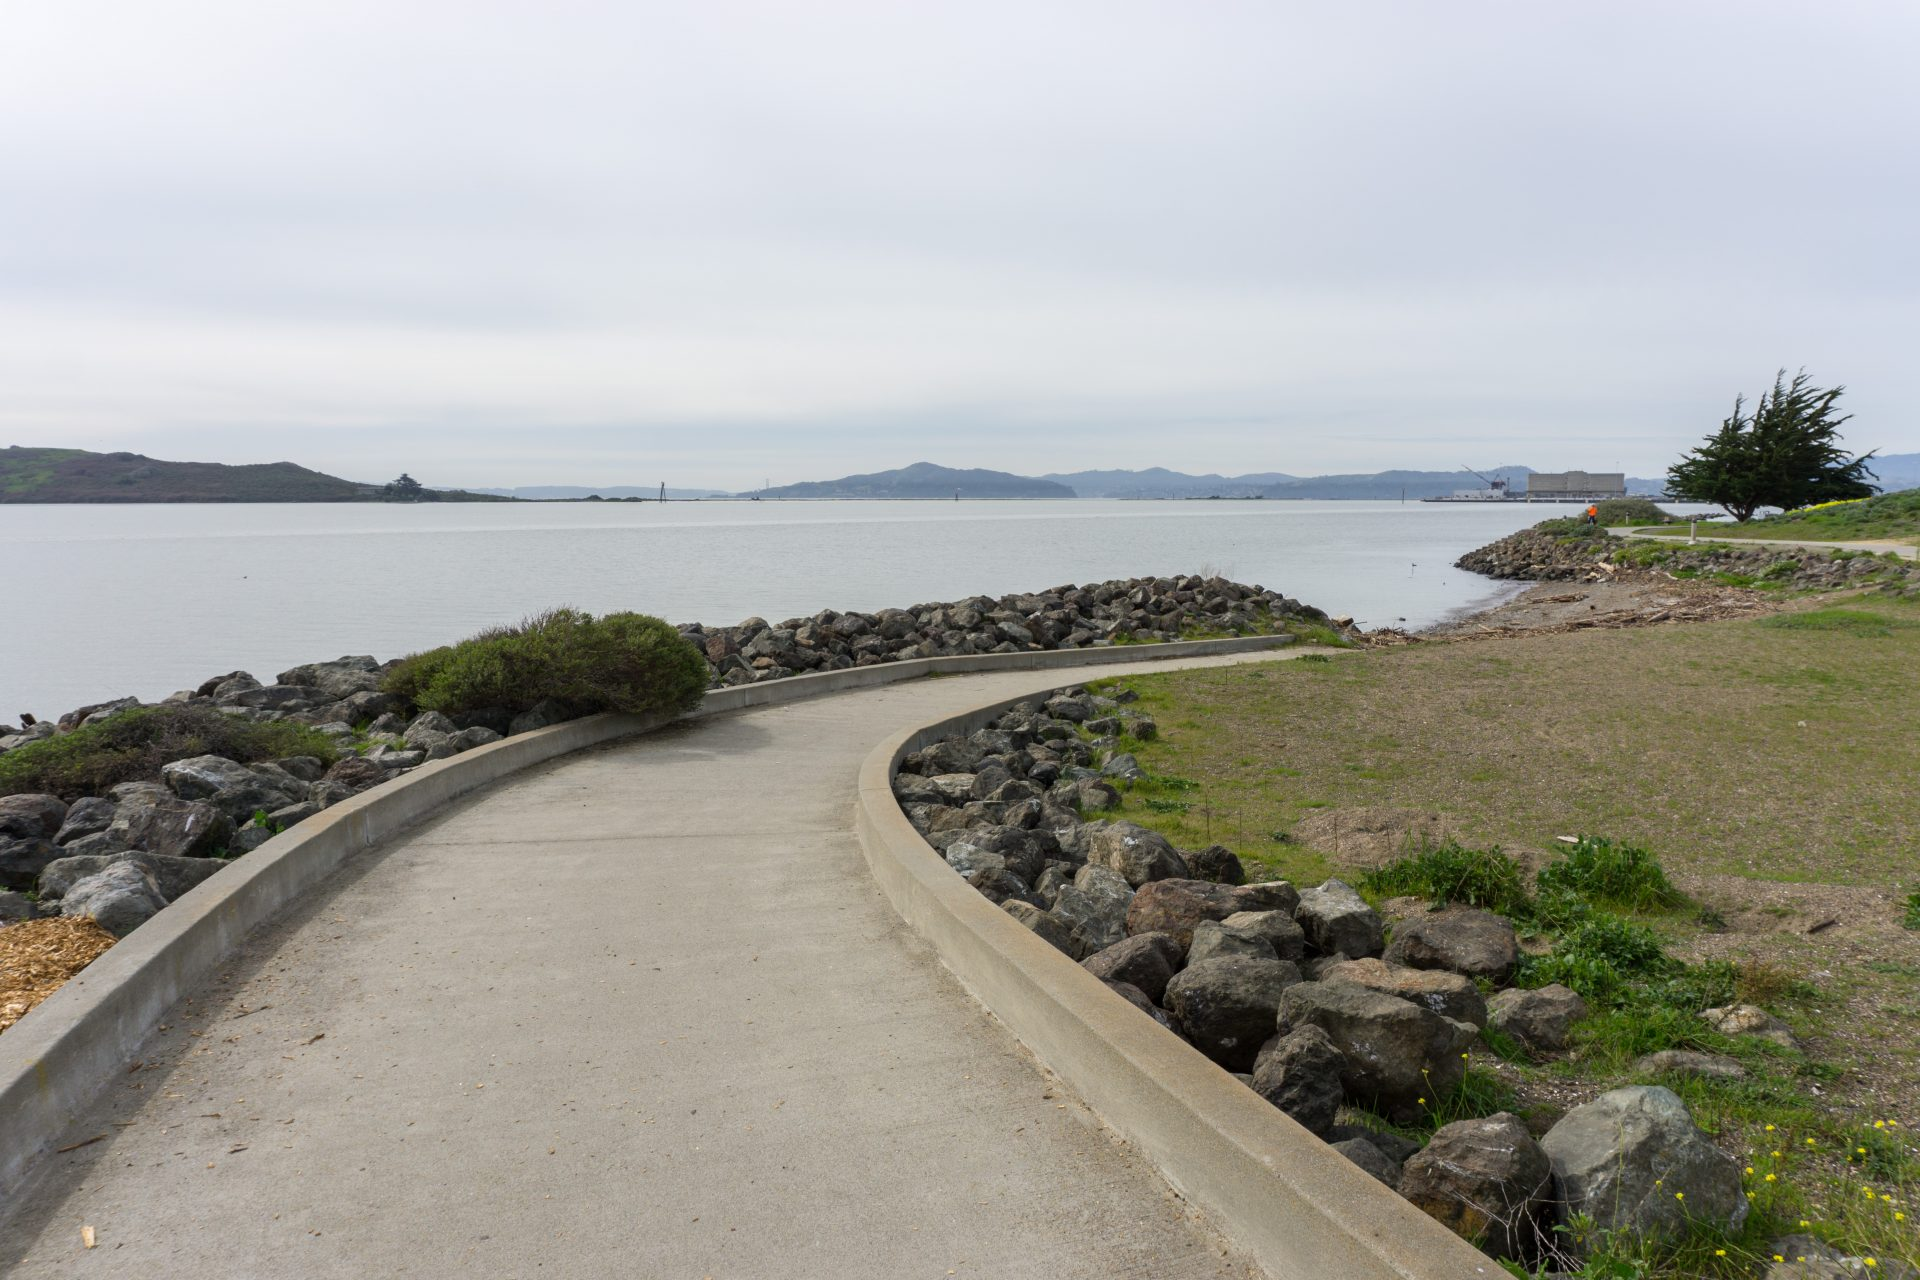 Paved path curves to right, ending at sandy bech